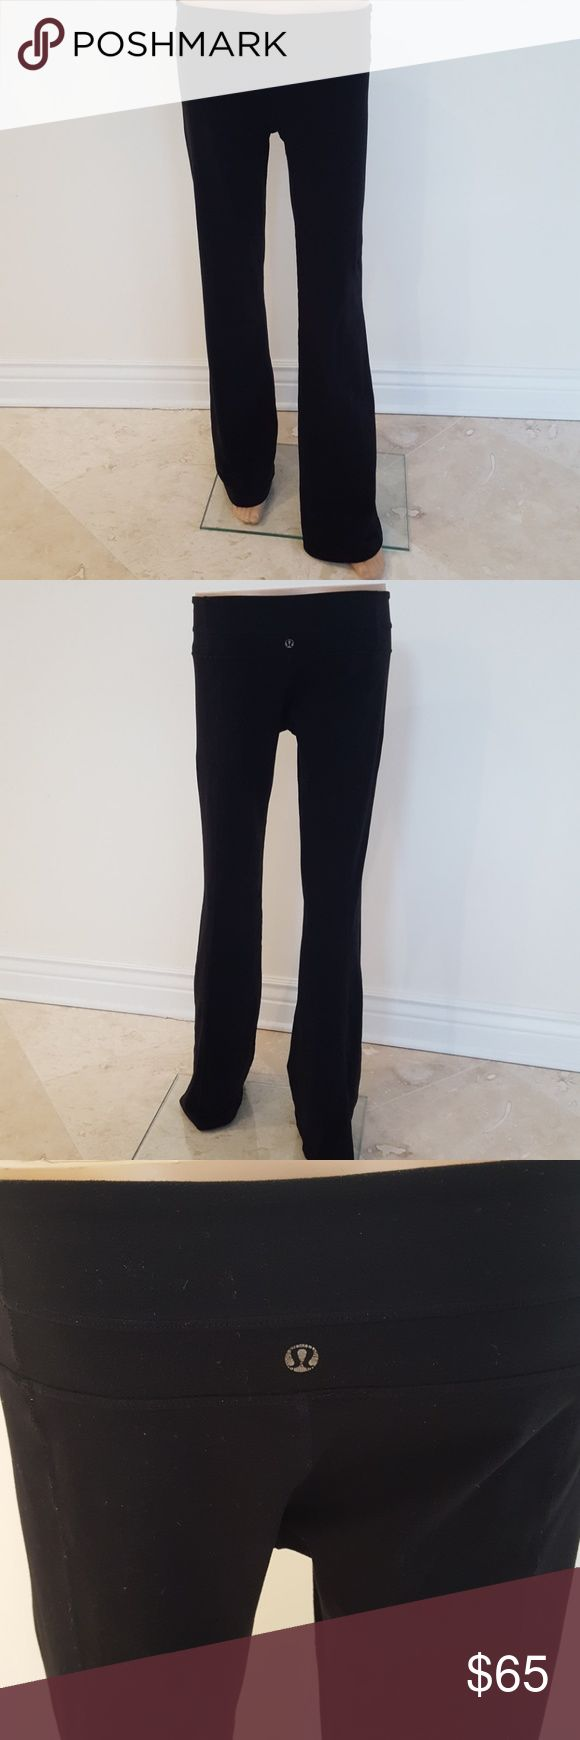 Lululemon pants 💥FREE SHIPPING💥 Lululemon active wear Gently Used  Free shipping! Take advantage of free shipping for other items in my closet by bundling with this listing! Please let me know before you purchase or bundle so I can apply the discount for shipping to this listing. Slight pilling but not too noticeable. 💥PRICE FIRM💥 lululemon athletica Pants Track Pants & Joggers